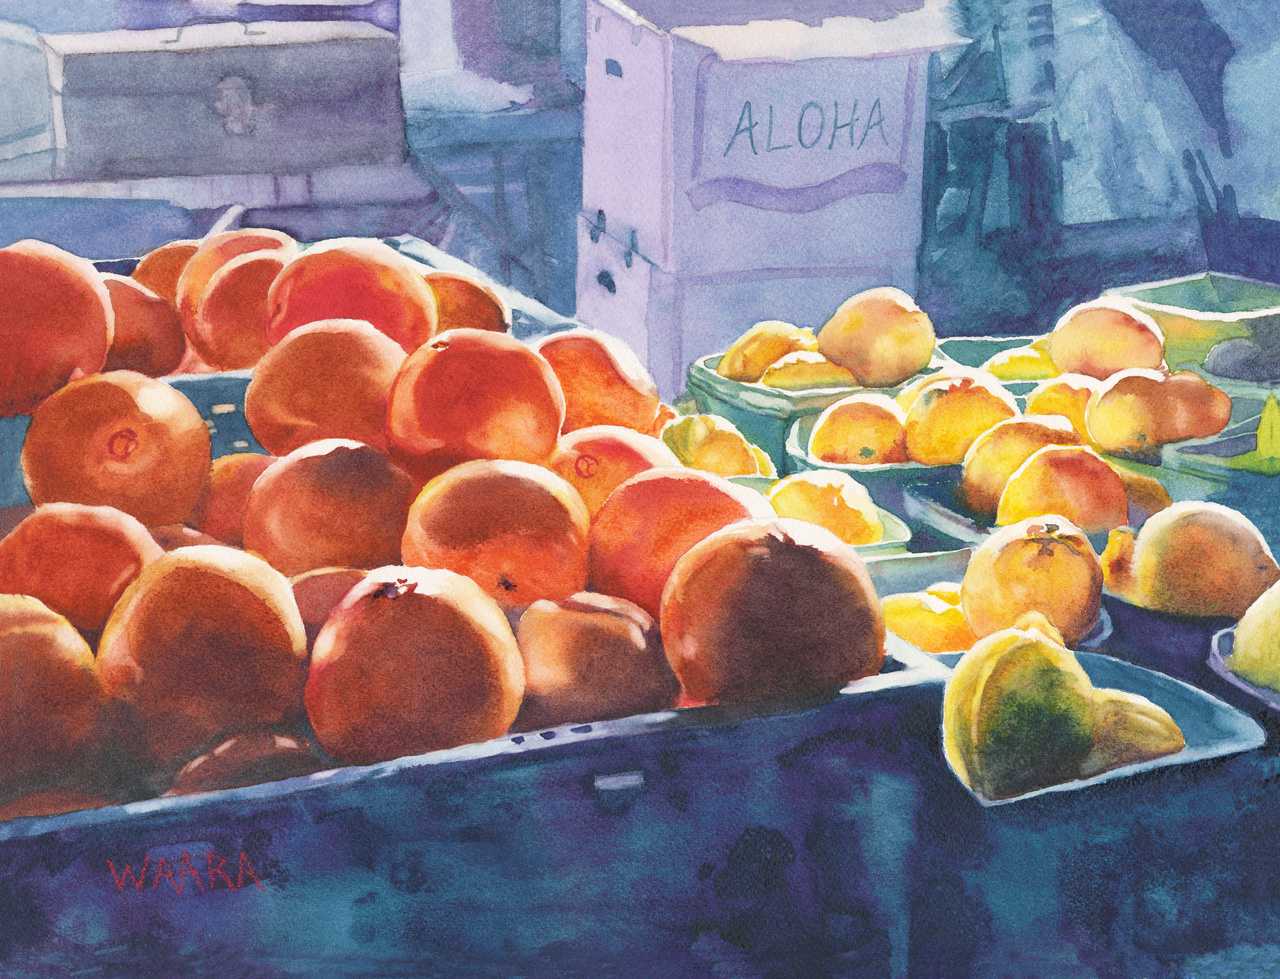 Watercolor painting of lemons and oranges in crates at a farmers' market